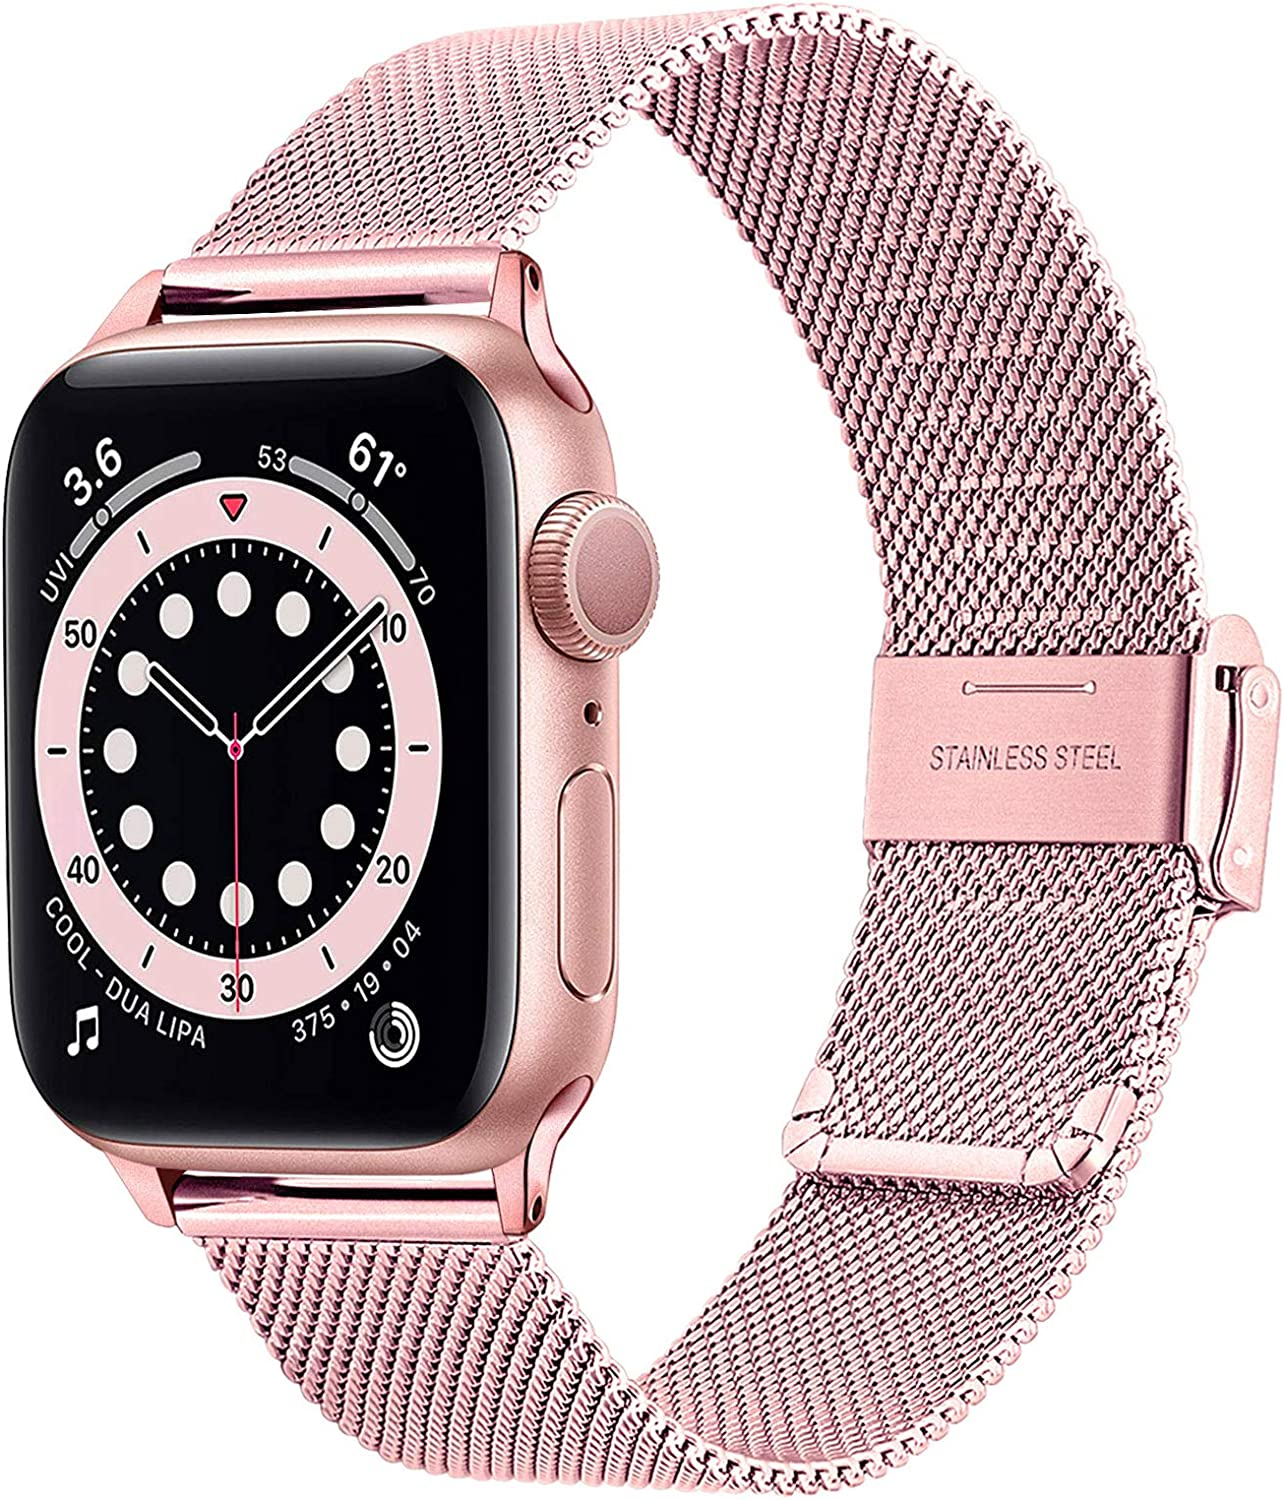 TRUMiRR Pink Gold Band for Apple Watch Series 6 / SE 38mm 40mm Women, Mesh Woven Stainless Steel Watchband Feminine Strap Wristband Replacement for iWatch SE Series 6 5 4 3 2 1